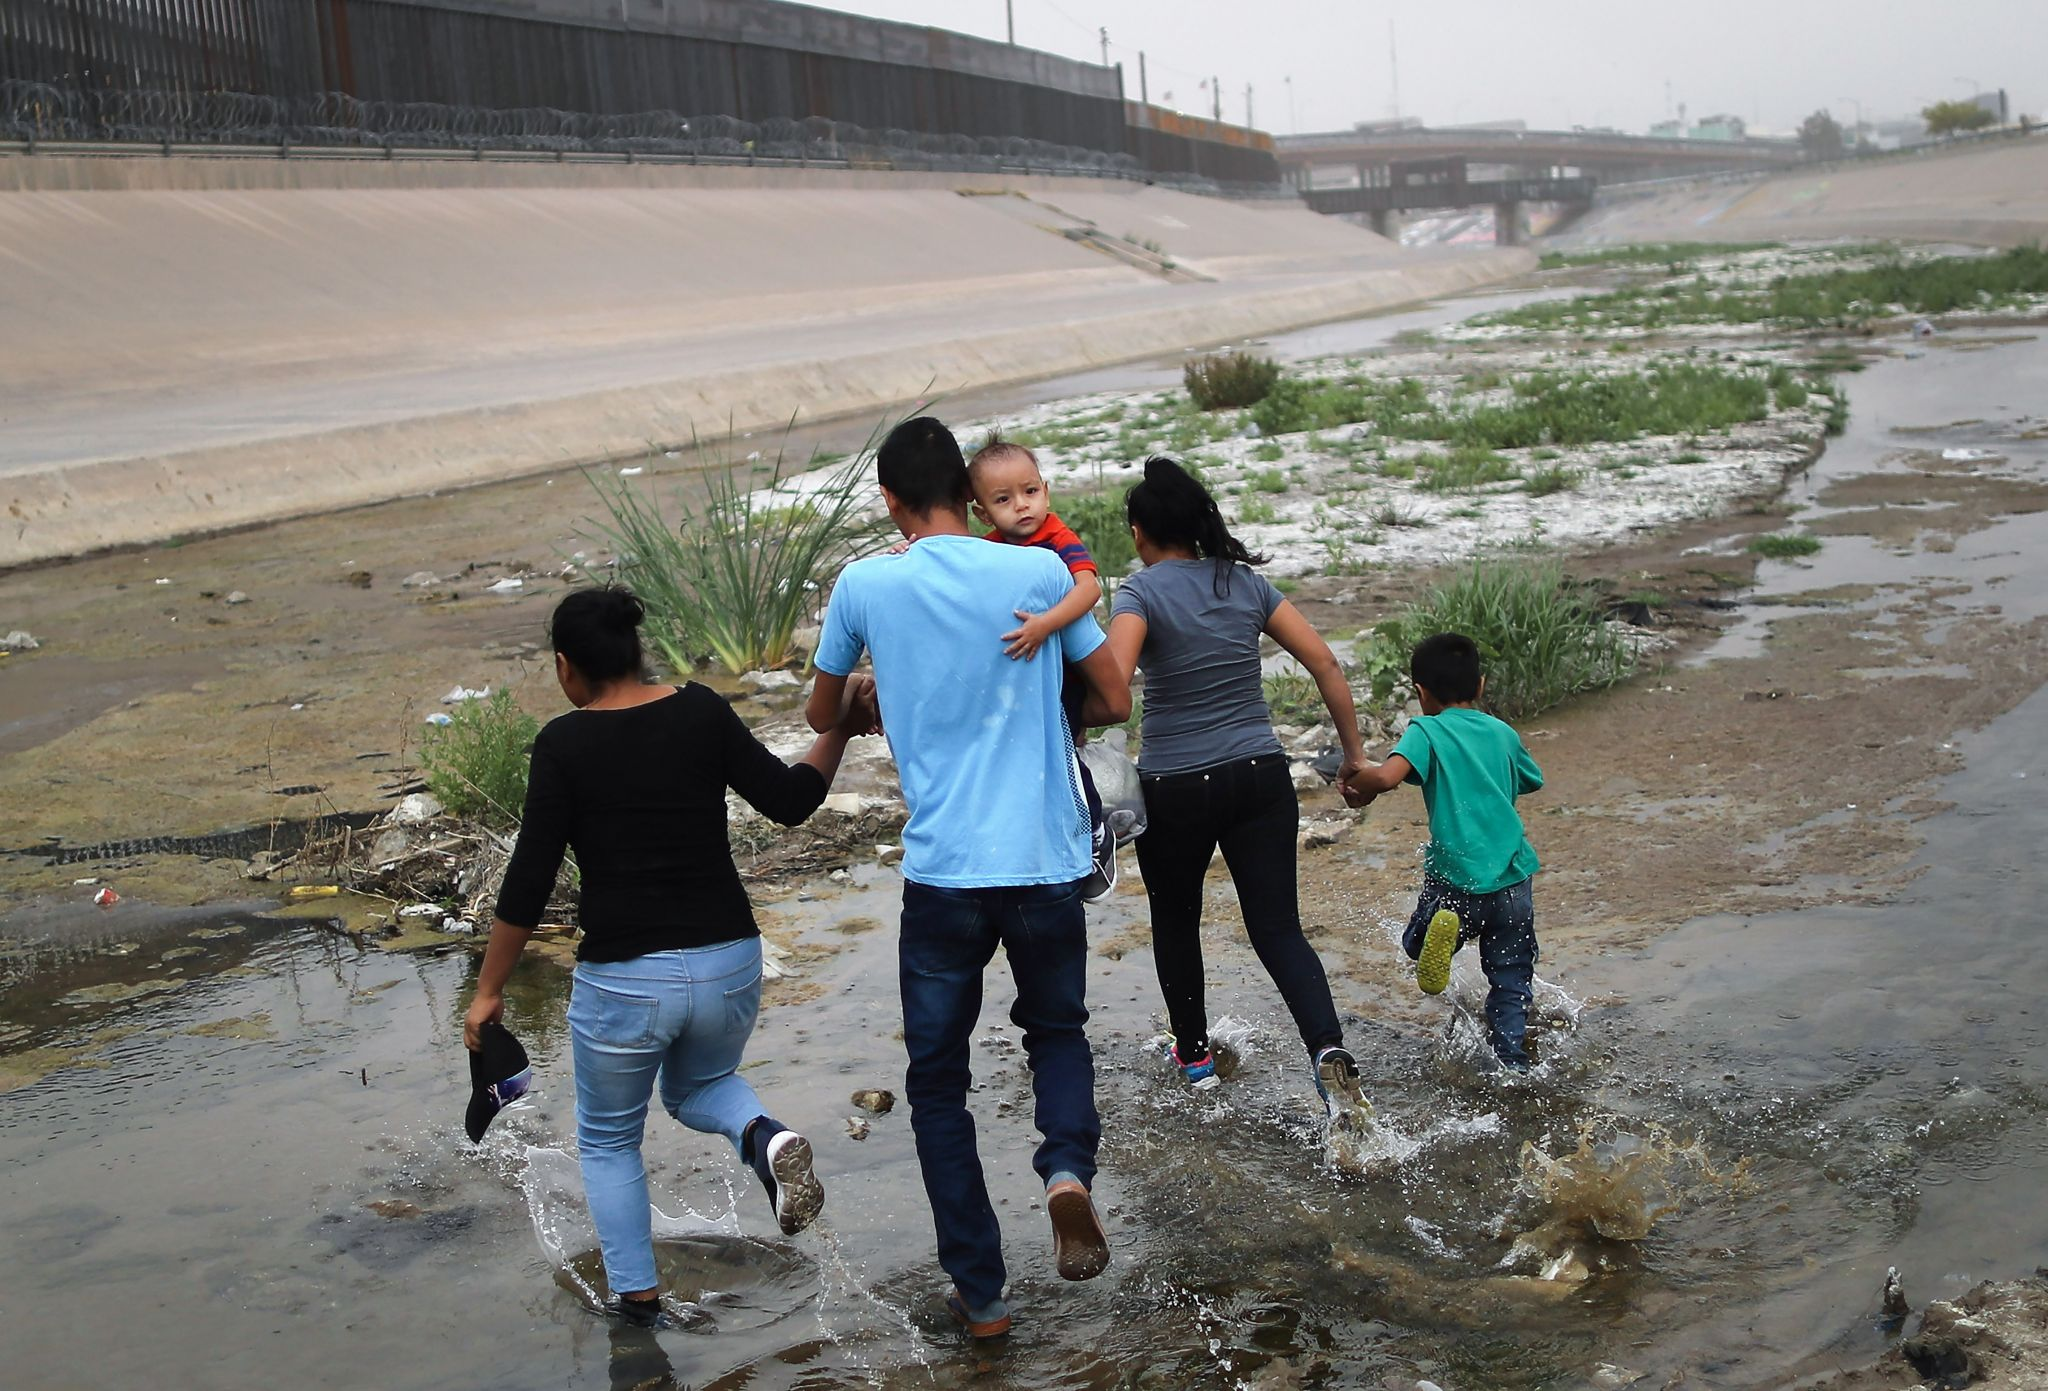 Flu, death, overcrowding: Scenes from the Texas border right now